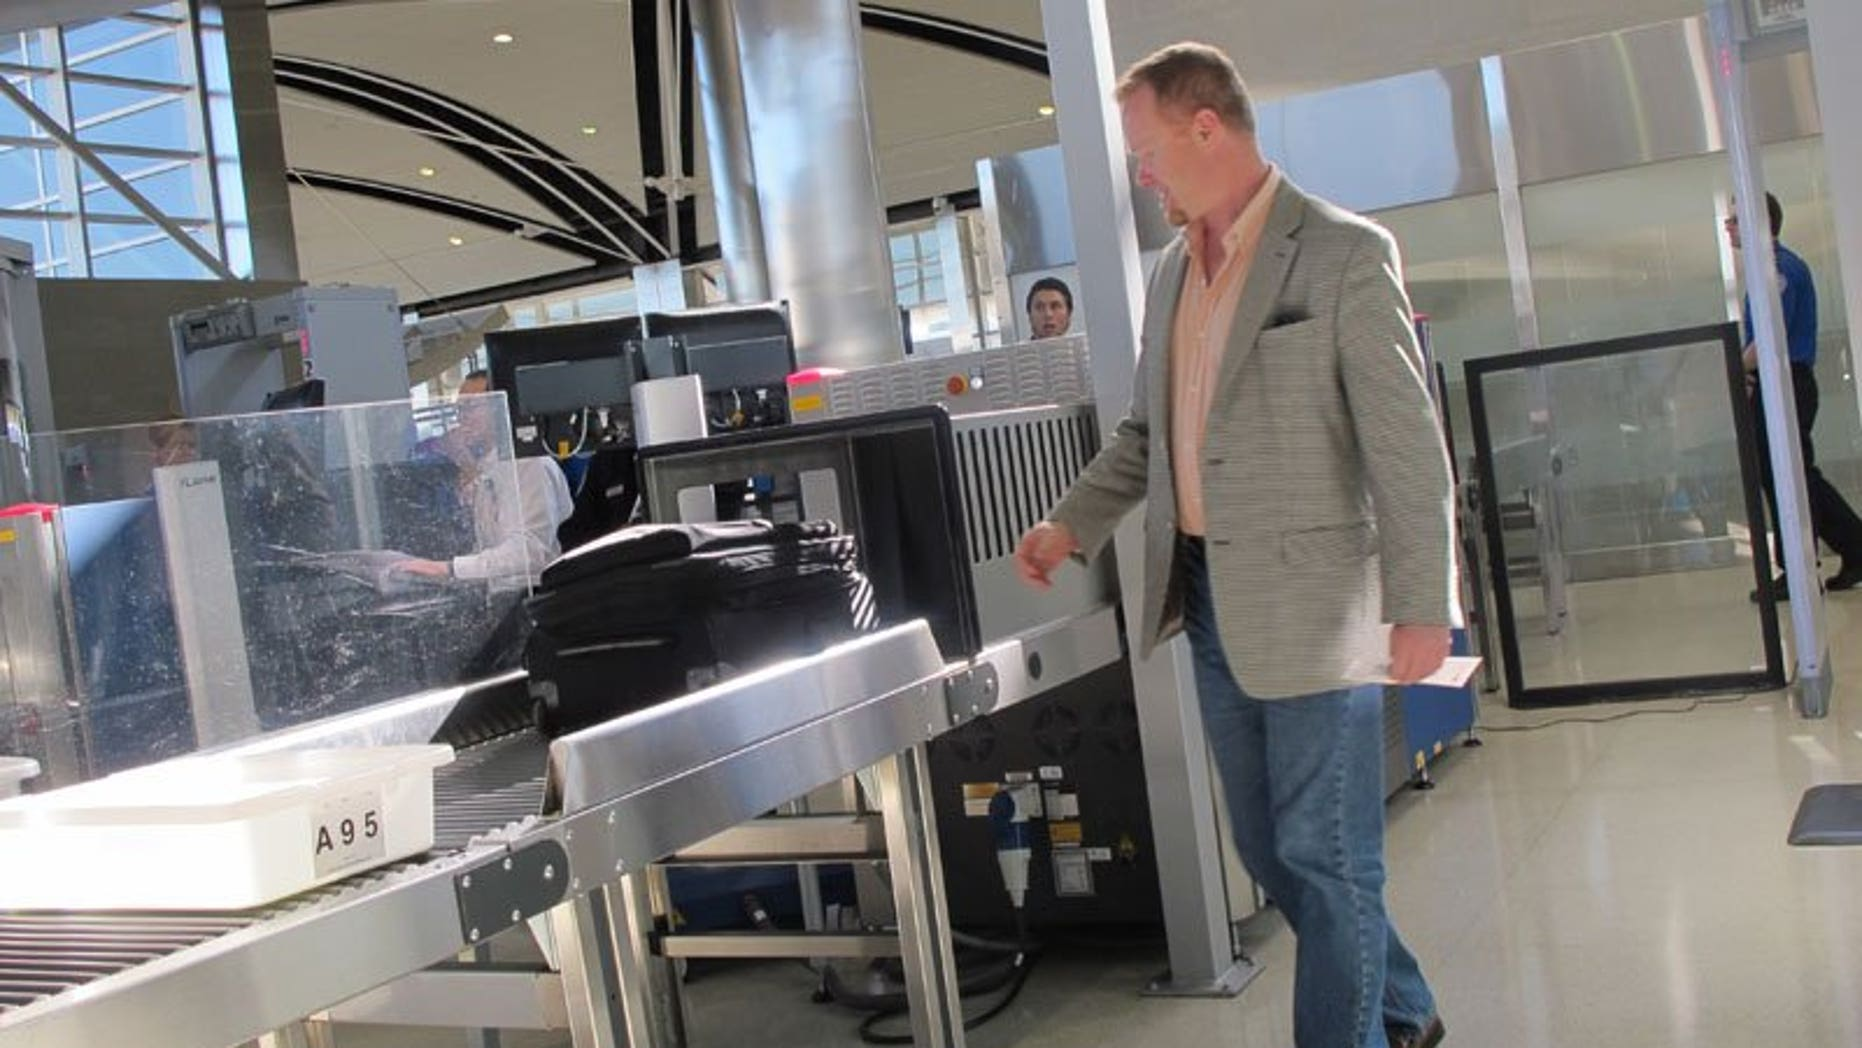 October 4: Mark Daly of Novi, Michigan, passes through the new expedited screening line at Detroit Metro Airport in its first hours of operation.